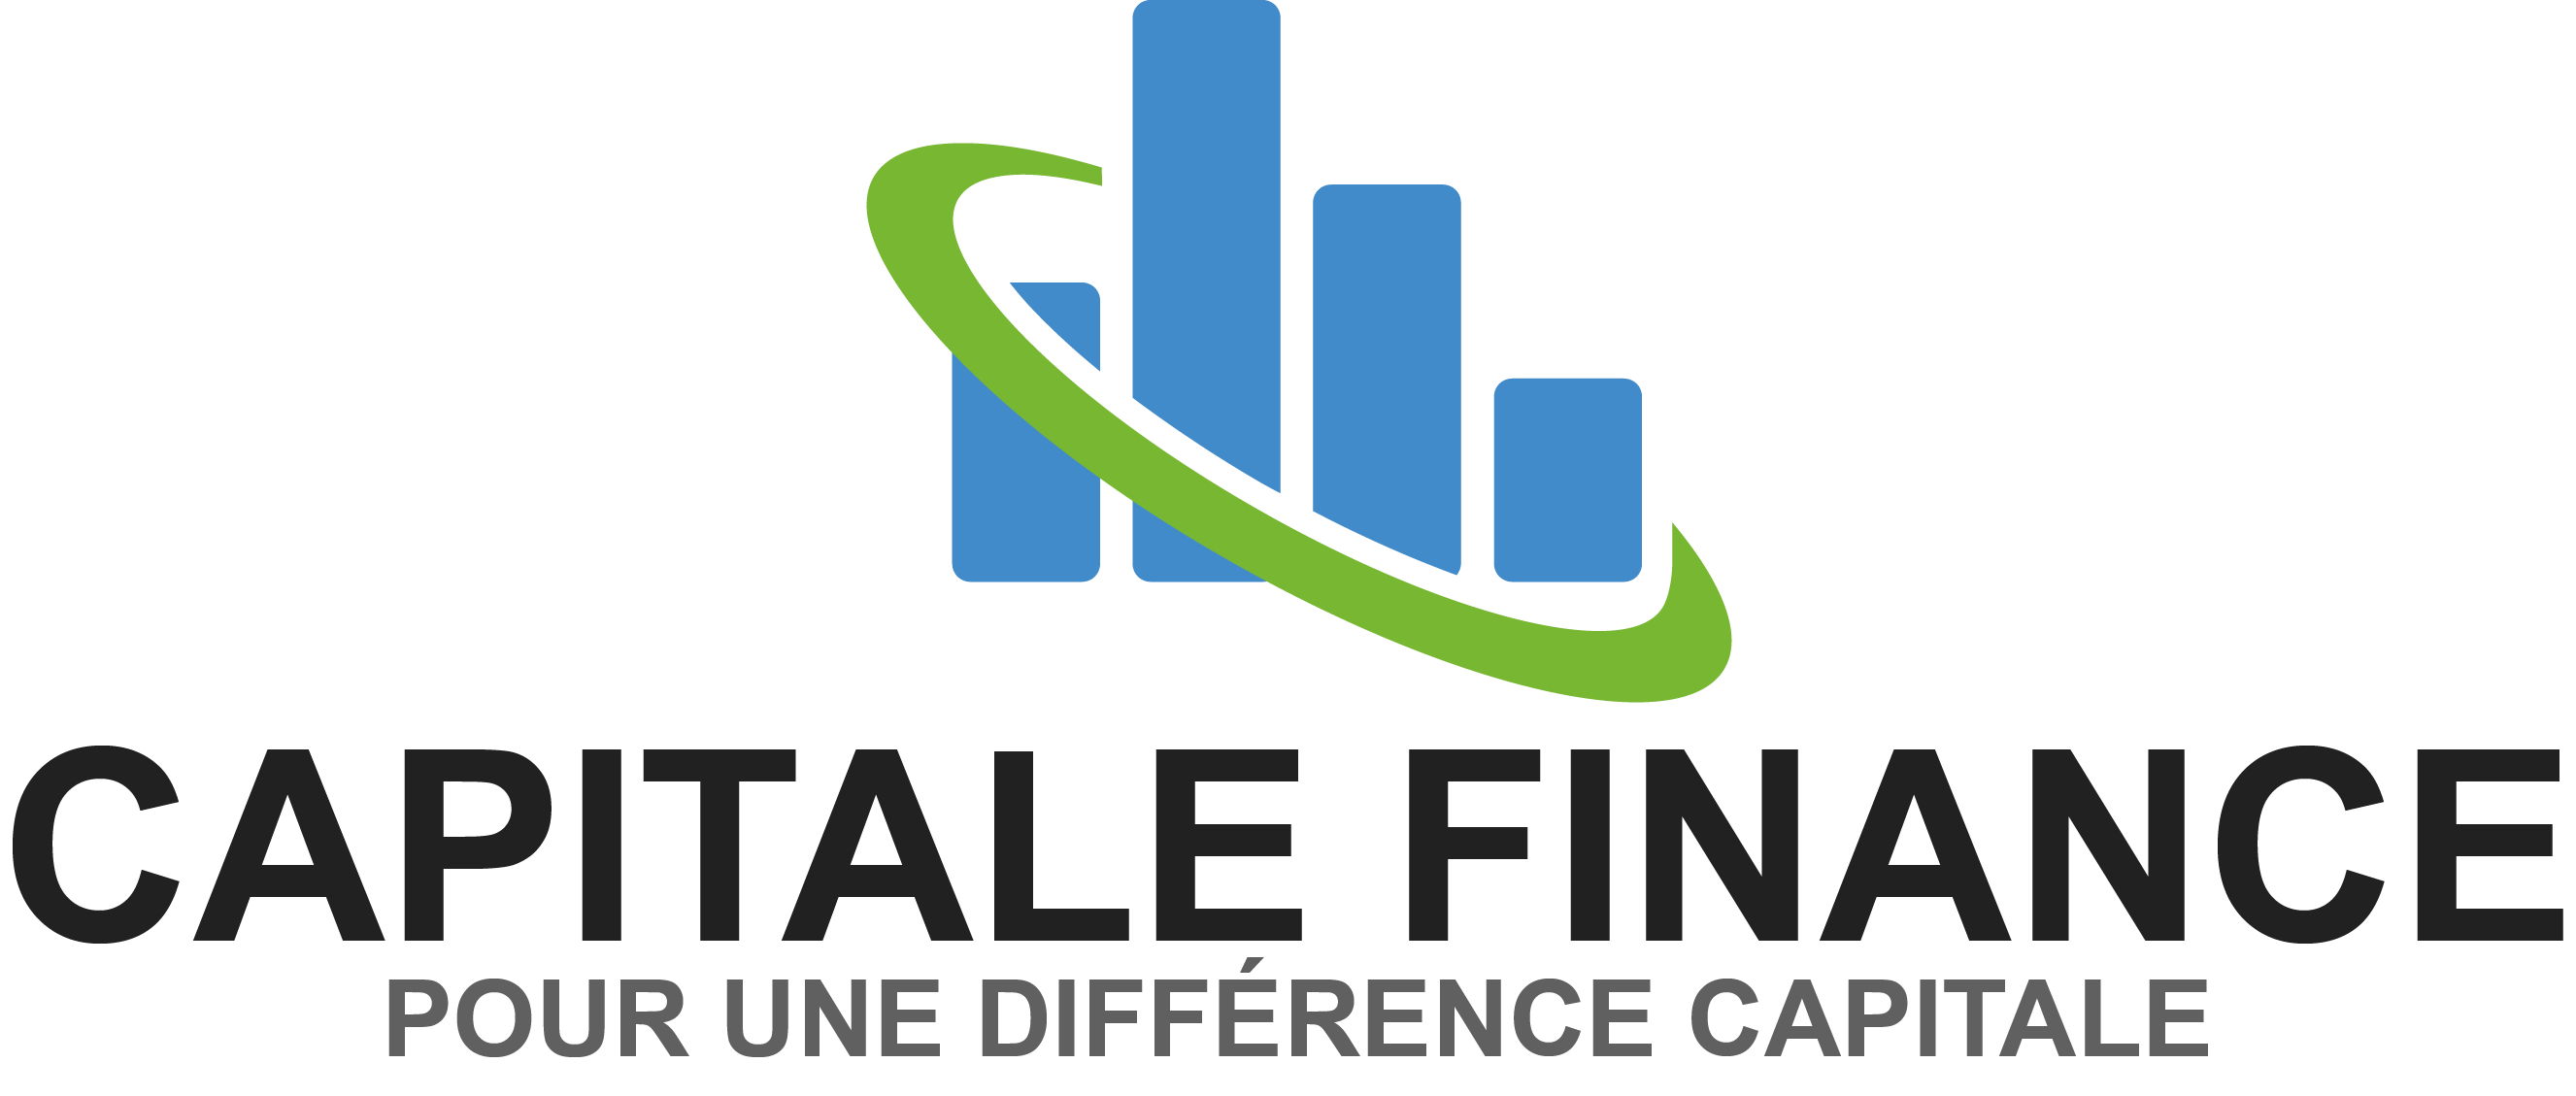 Logo Capitale Finance